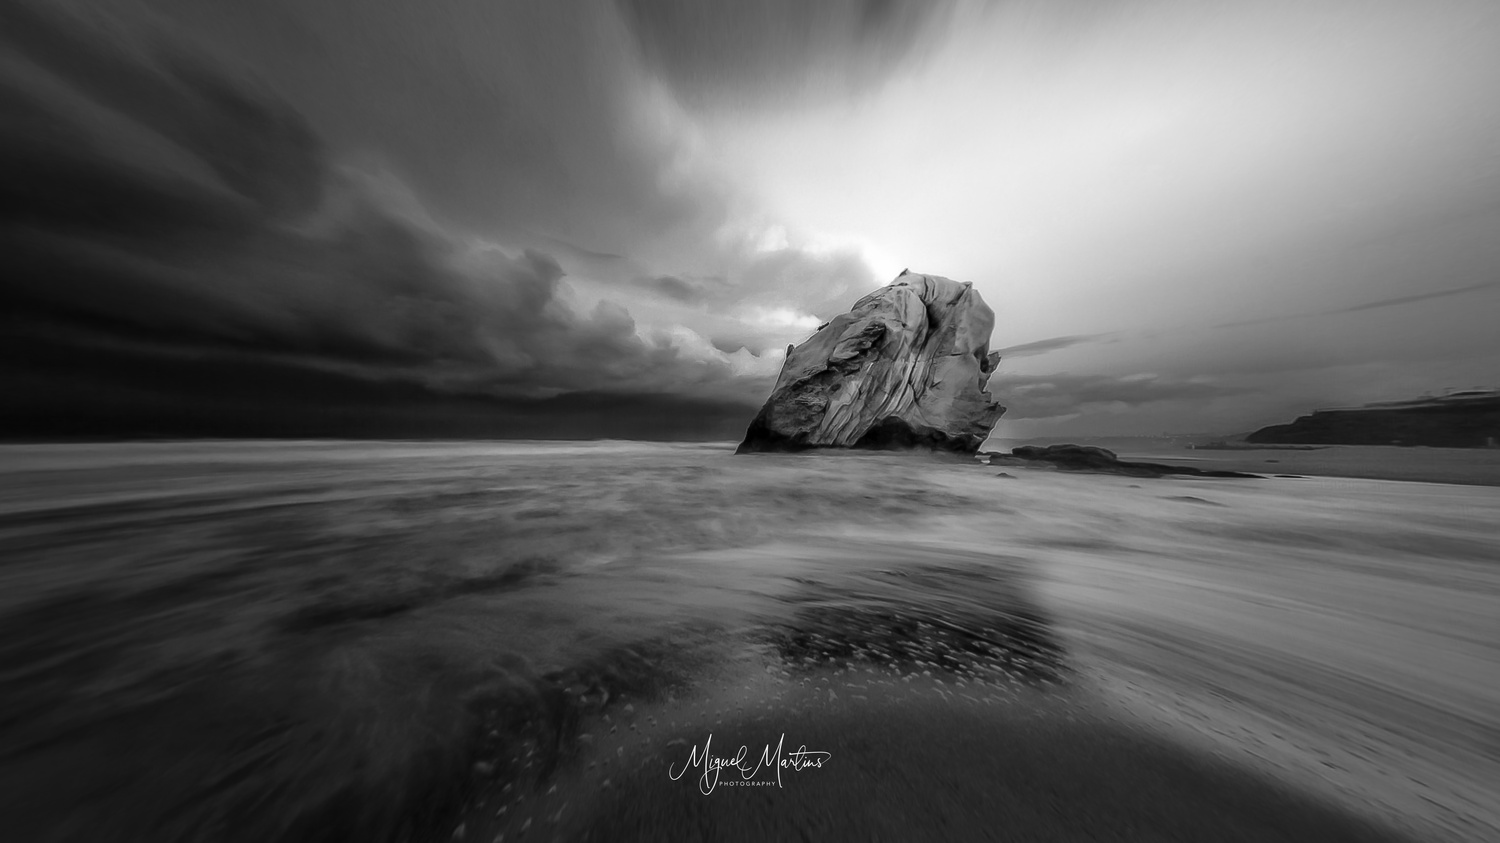 Eye of the storm by Miguel Martins